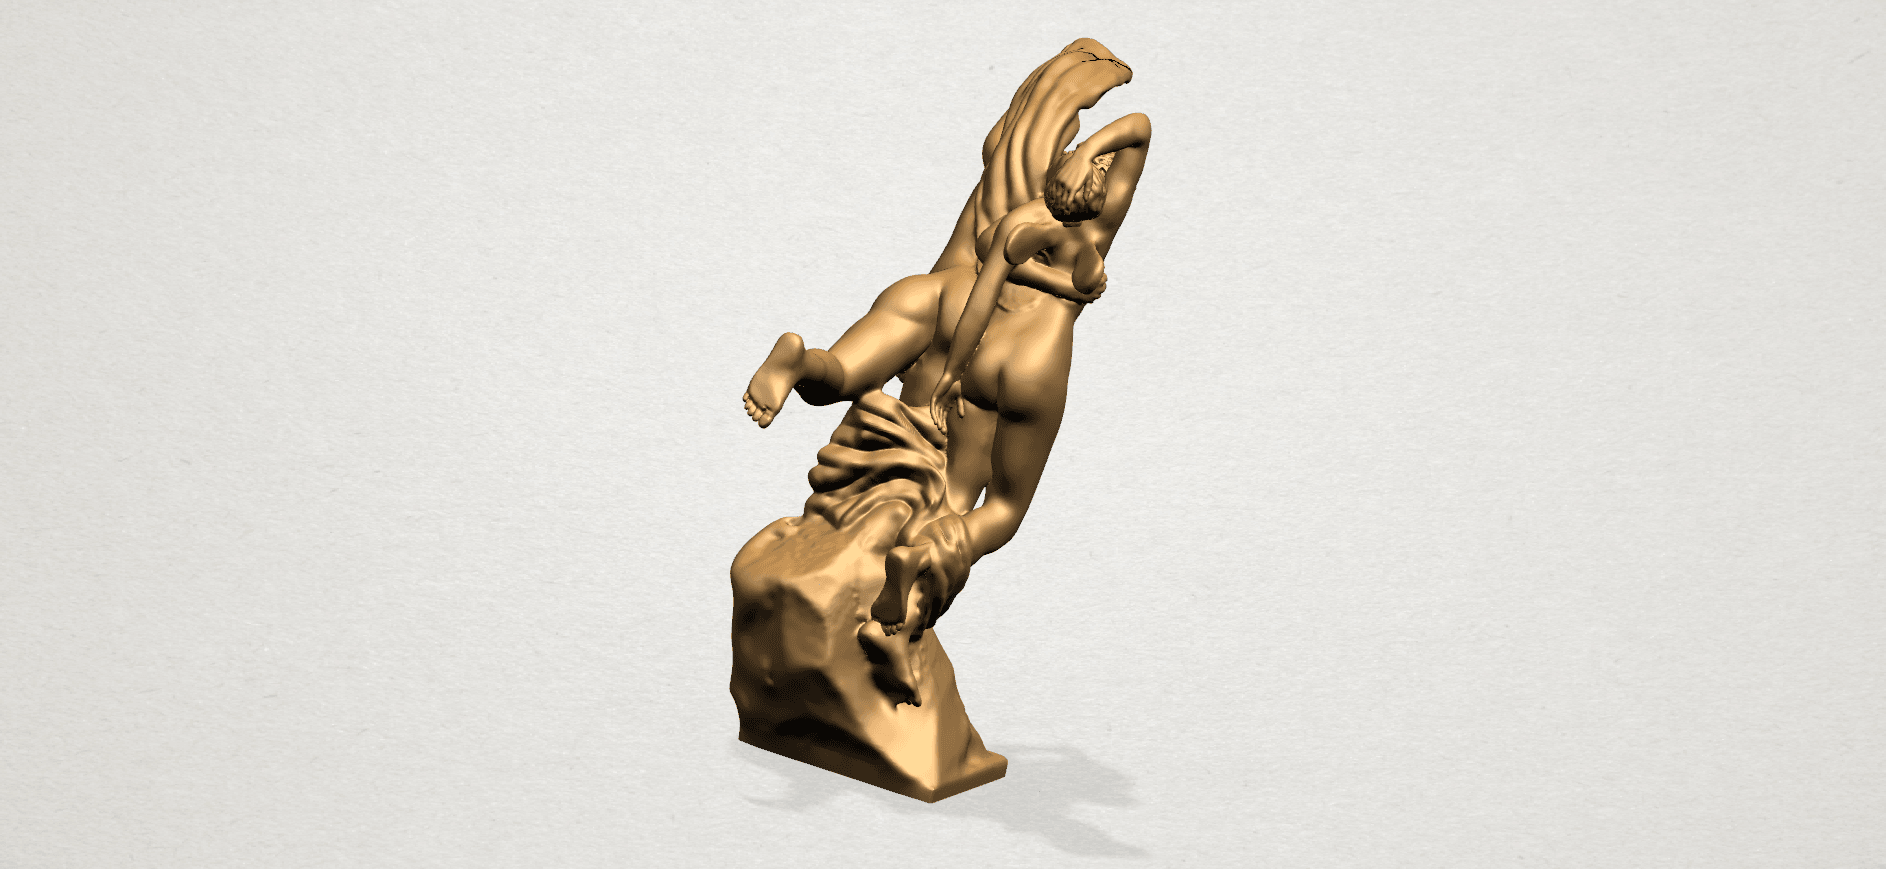 Cupid and Psyche - A15.png Download free STL file Cupid and Psyche • 3D printing template, GeorgesNikkei